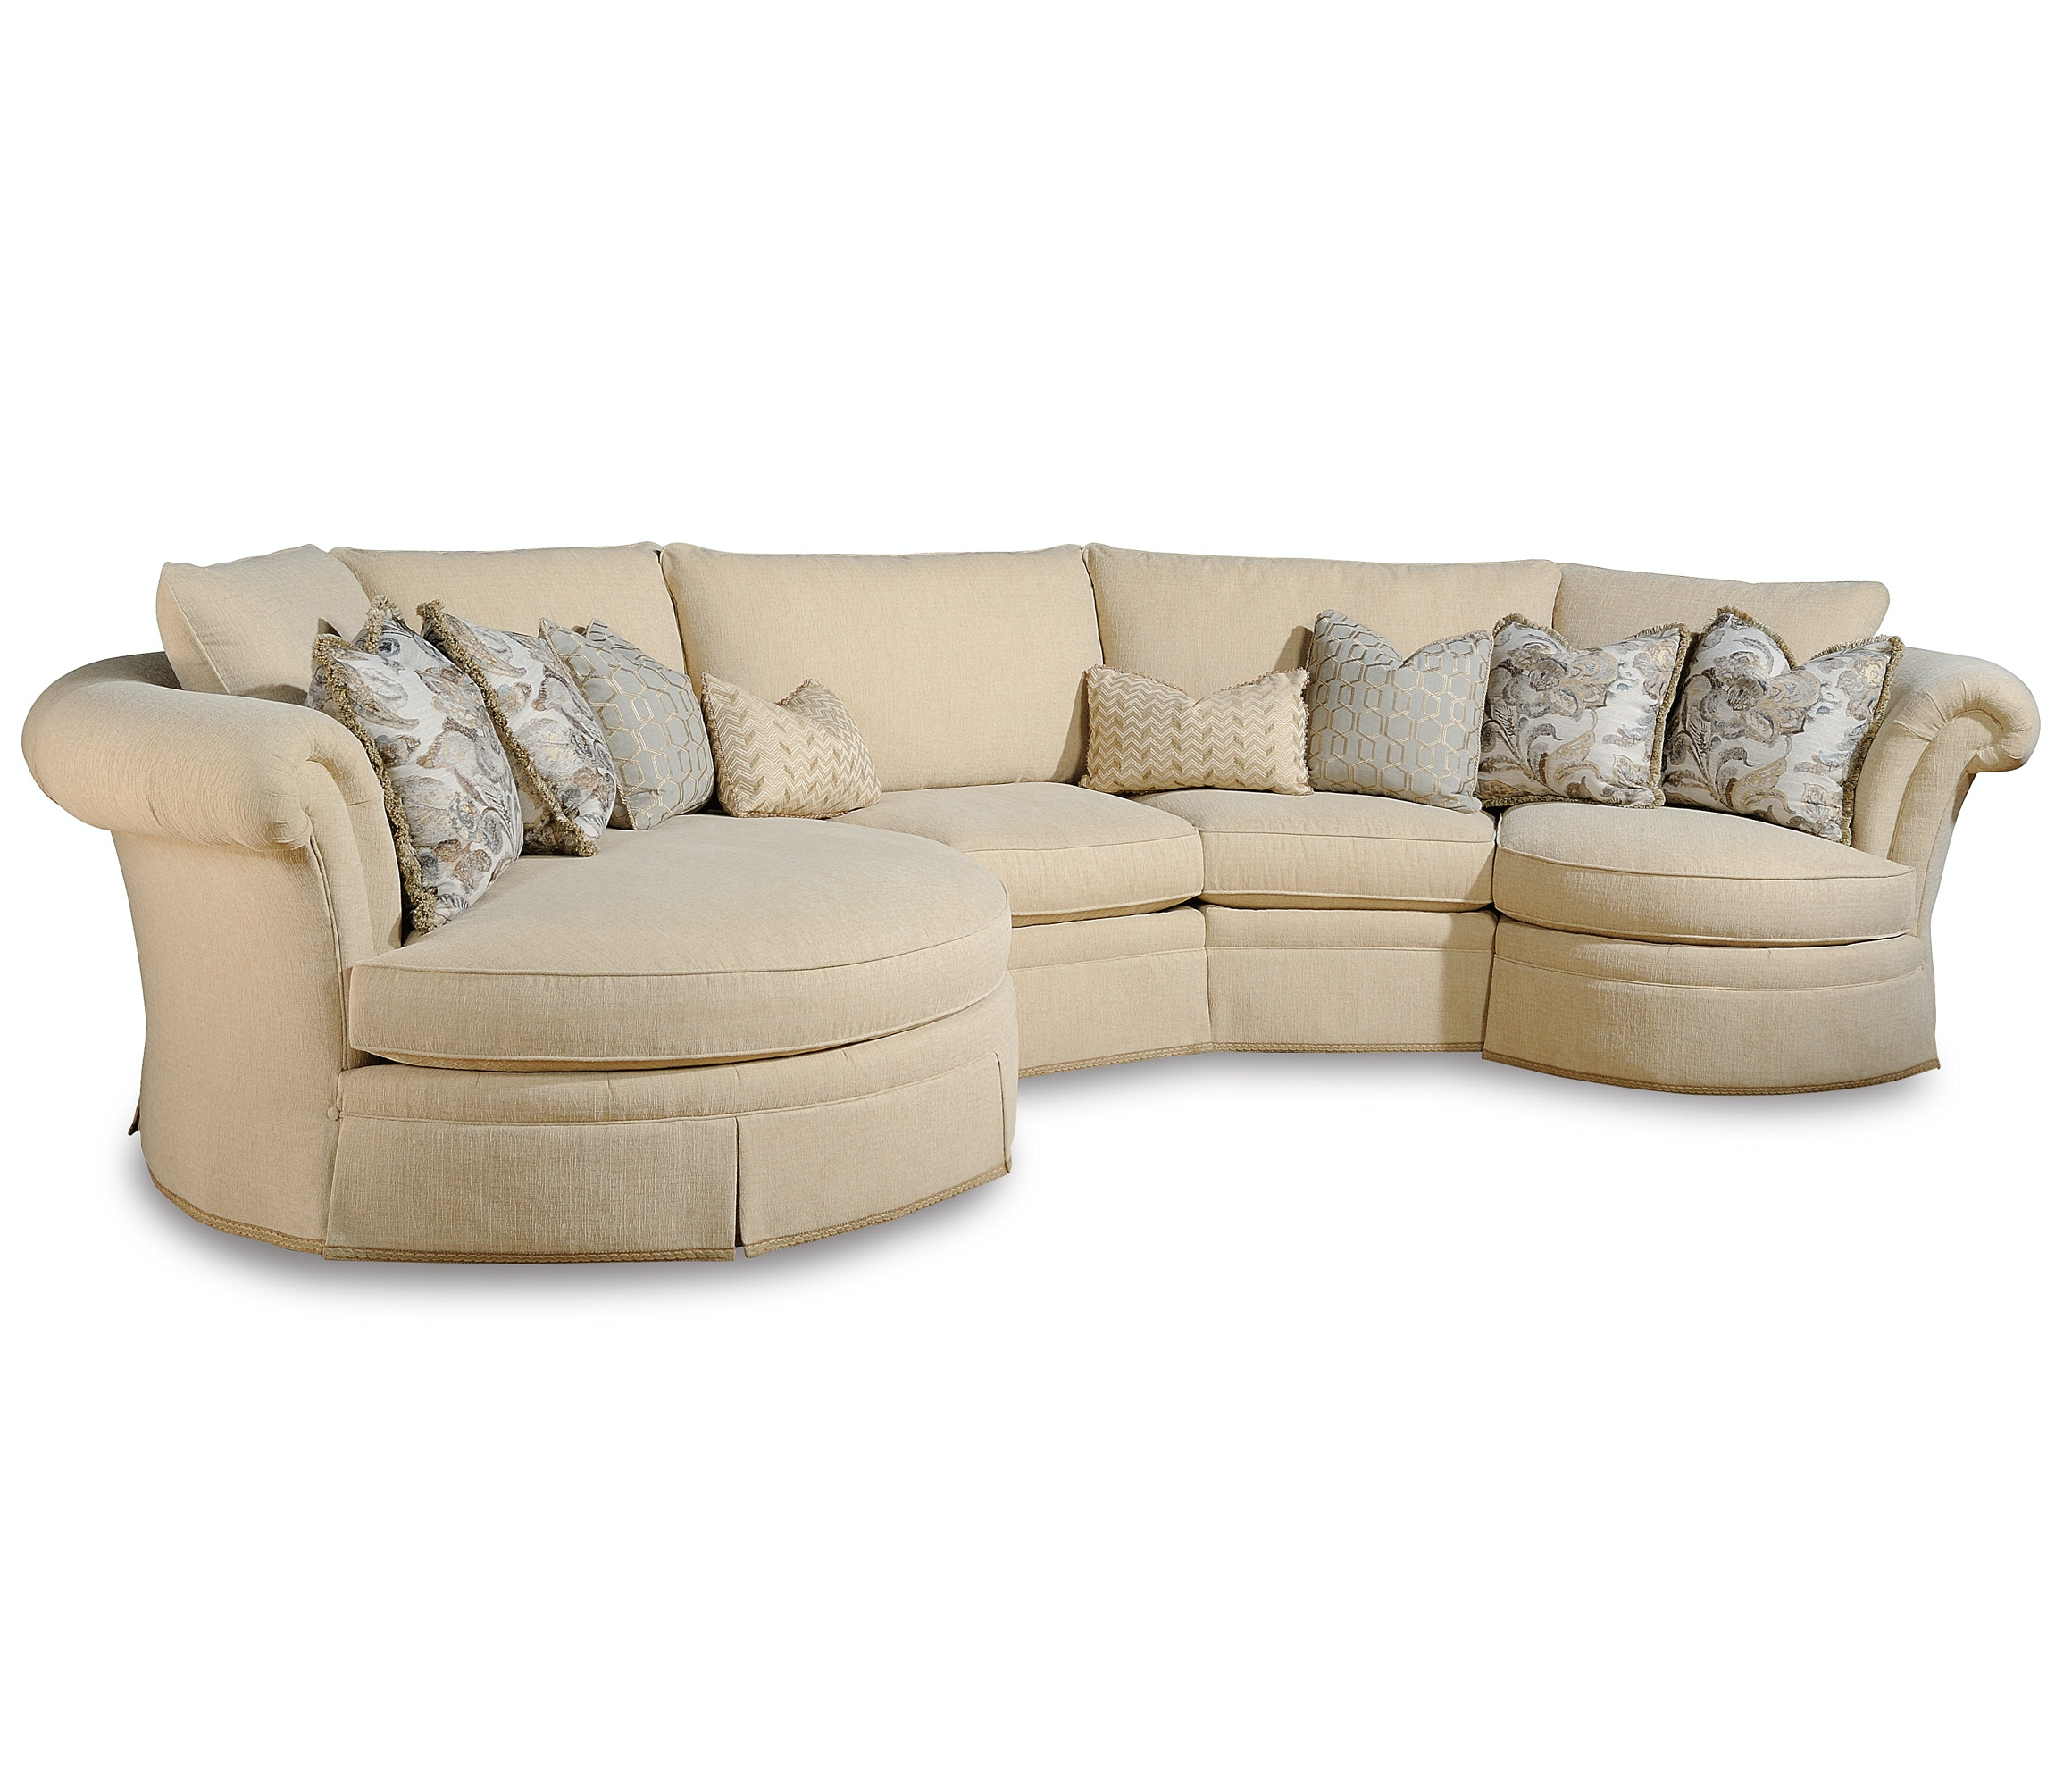 19. BAUDELAIRE SECTIONAL · 19 · Taylor King Furniture